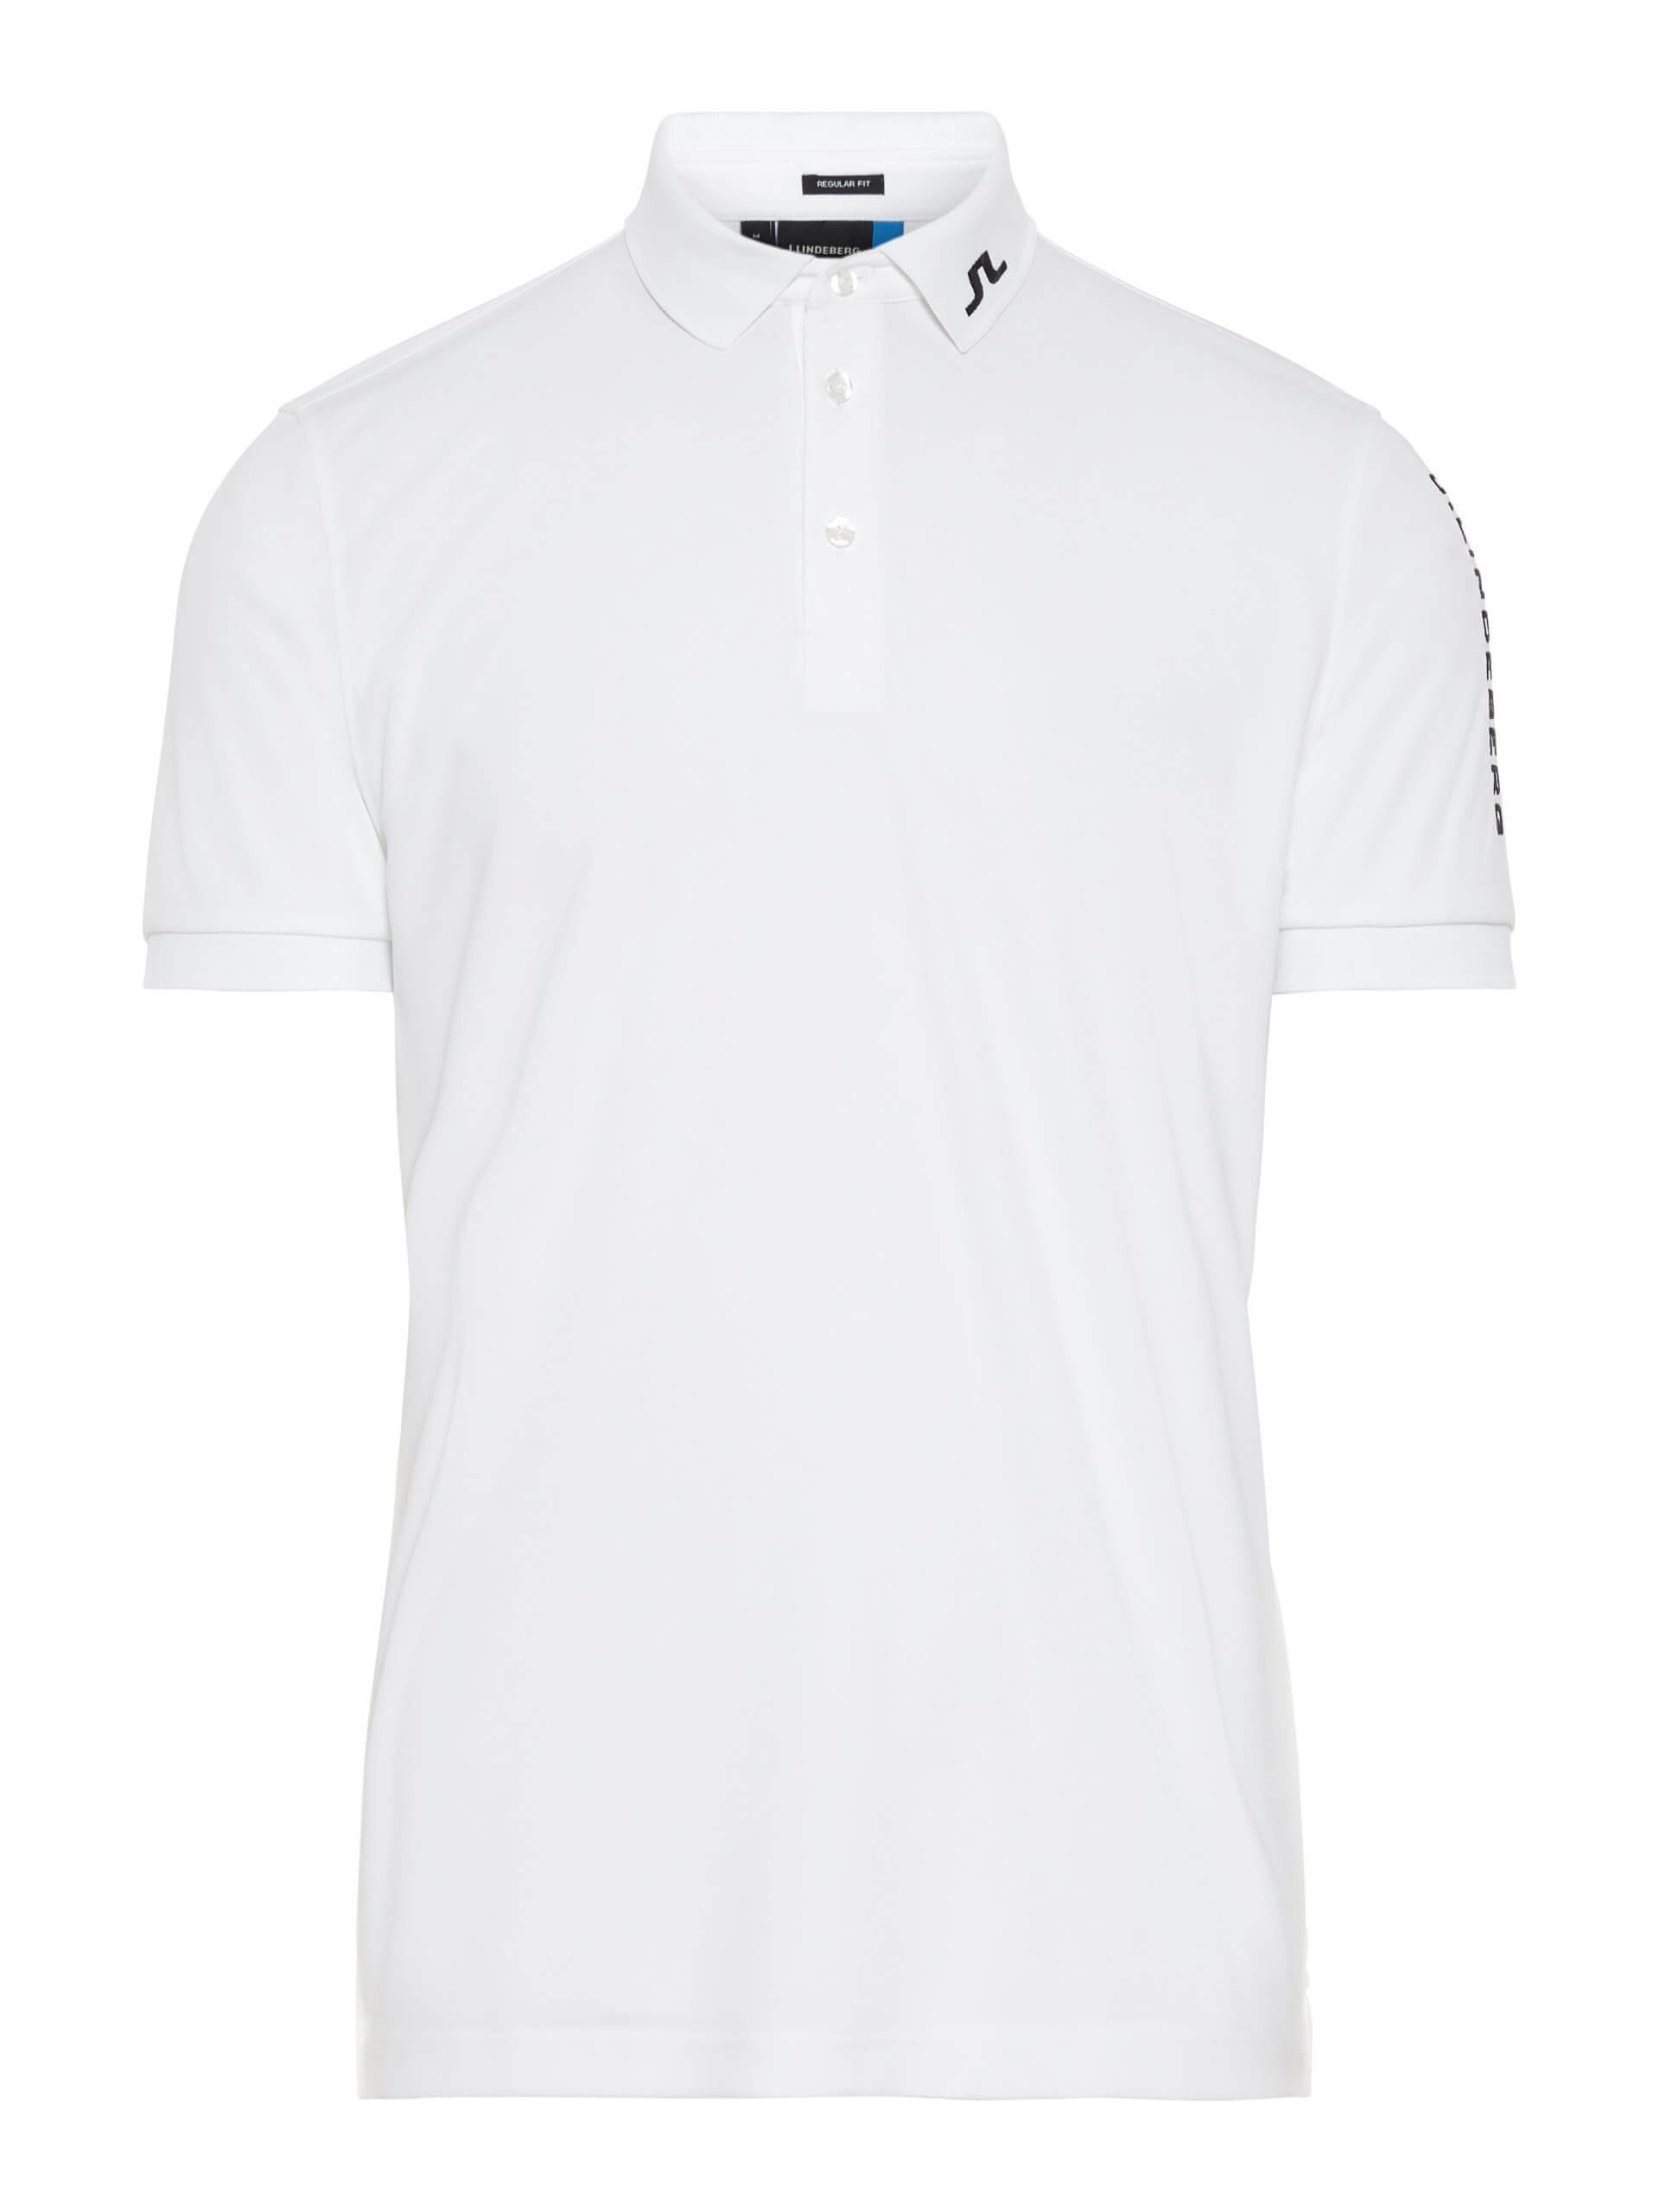 J.Lindeberg Tour Tech Reg Polo TX Jersey in white